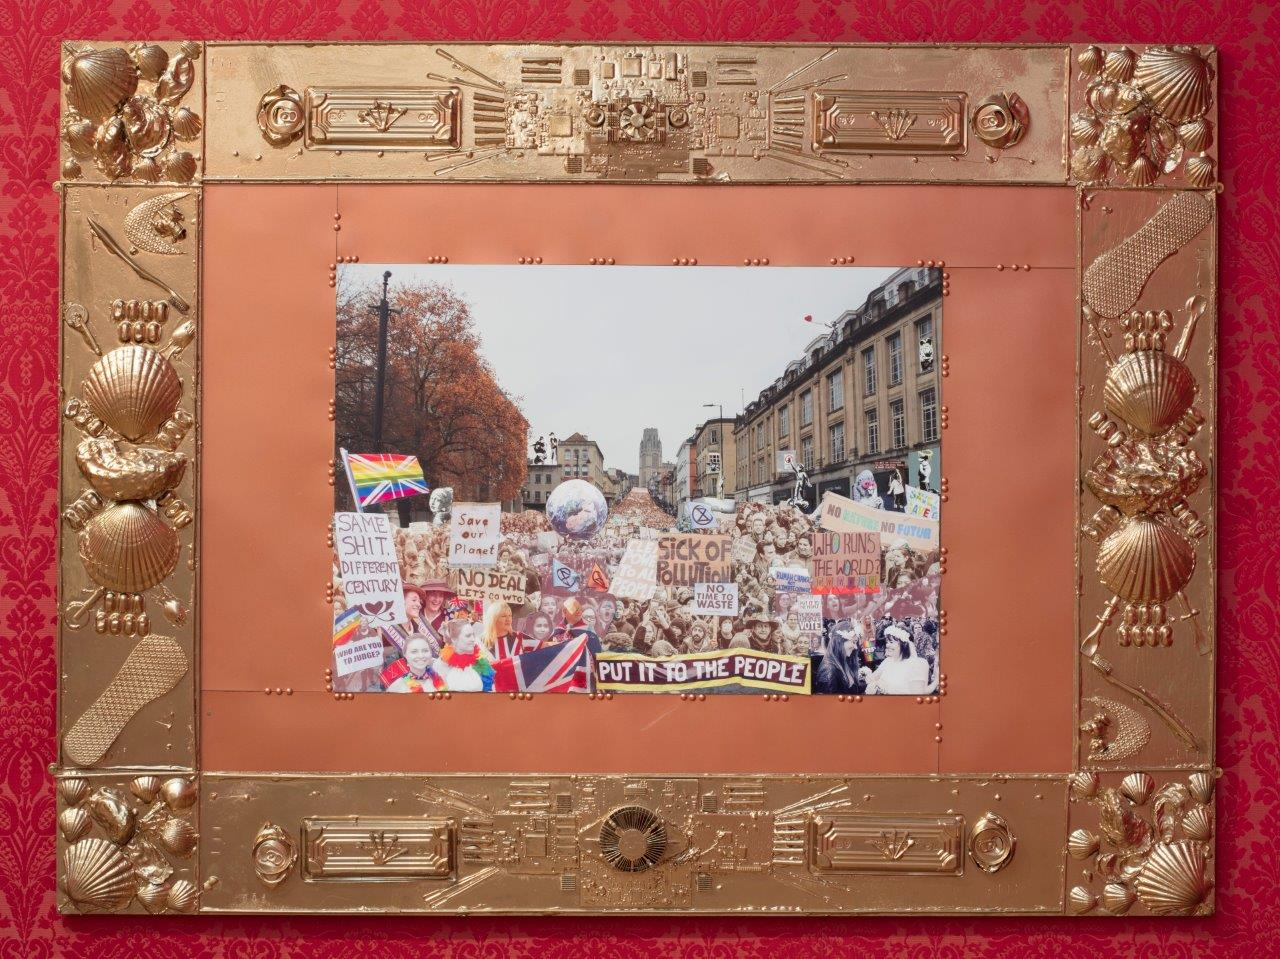 Collage of political protest on Park St, Bristol